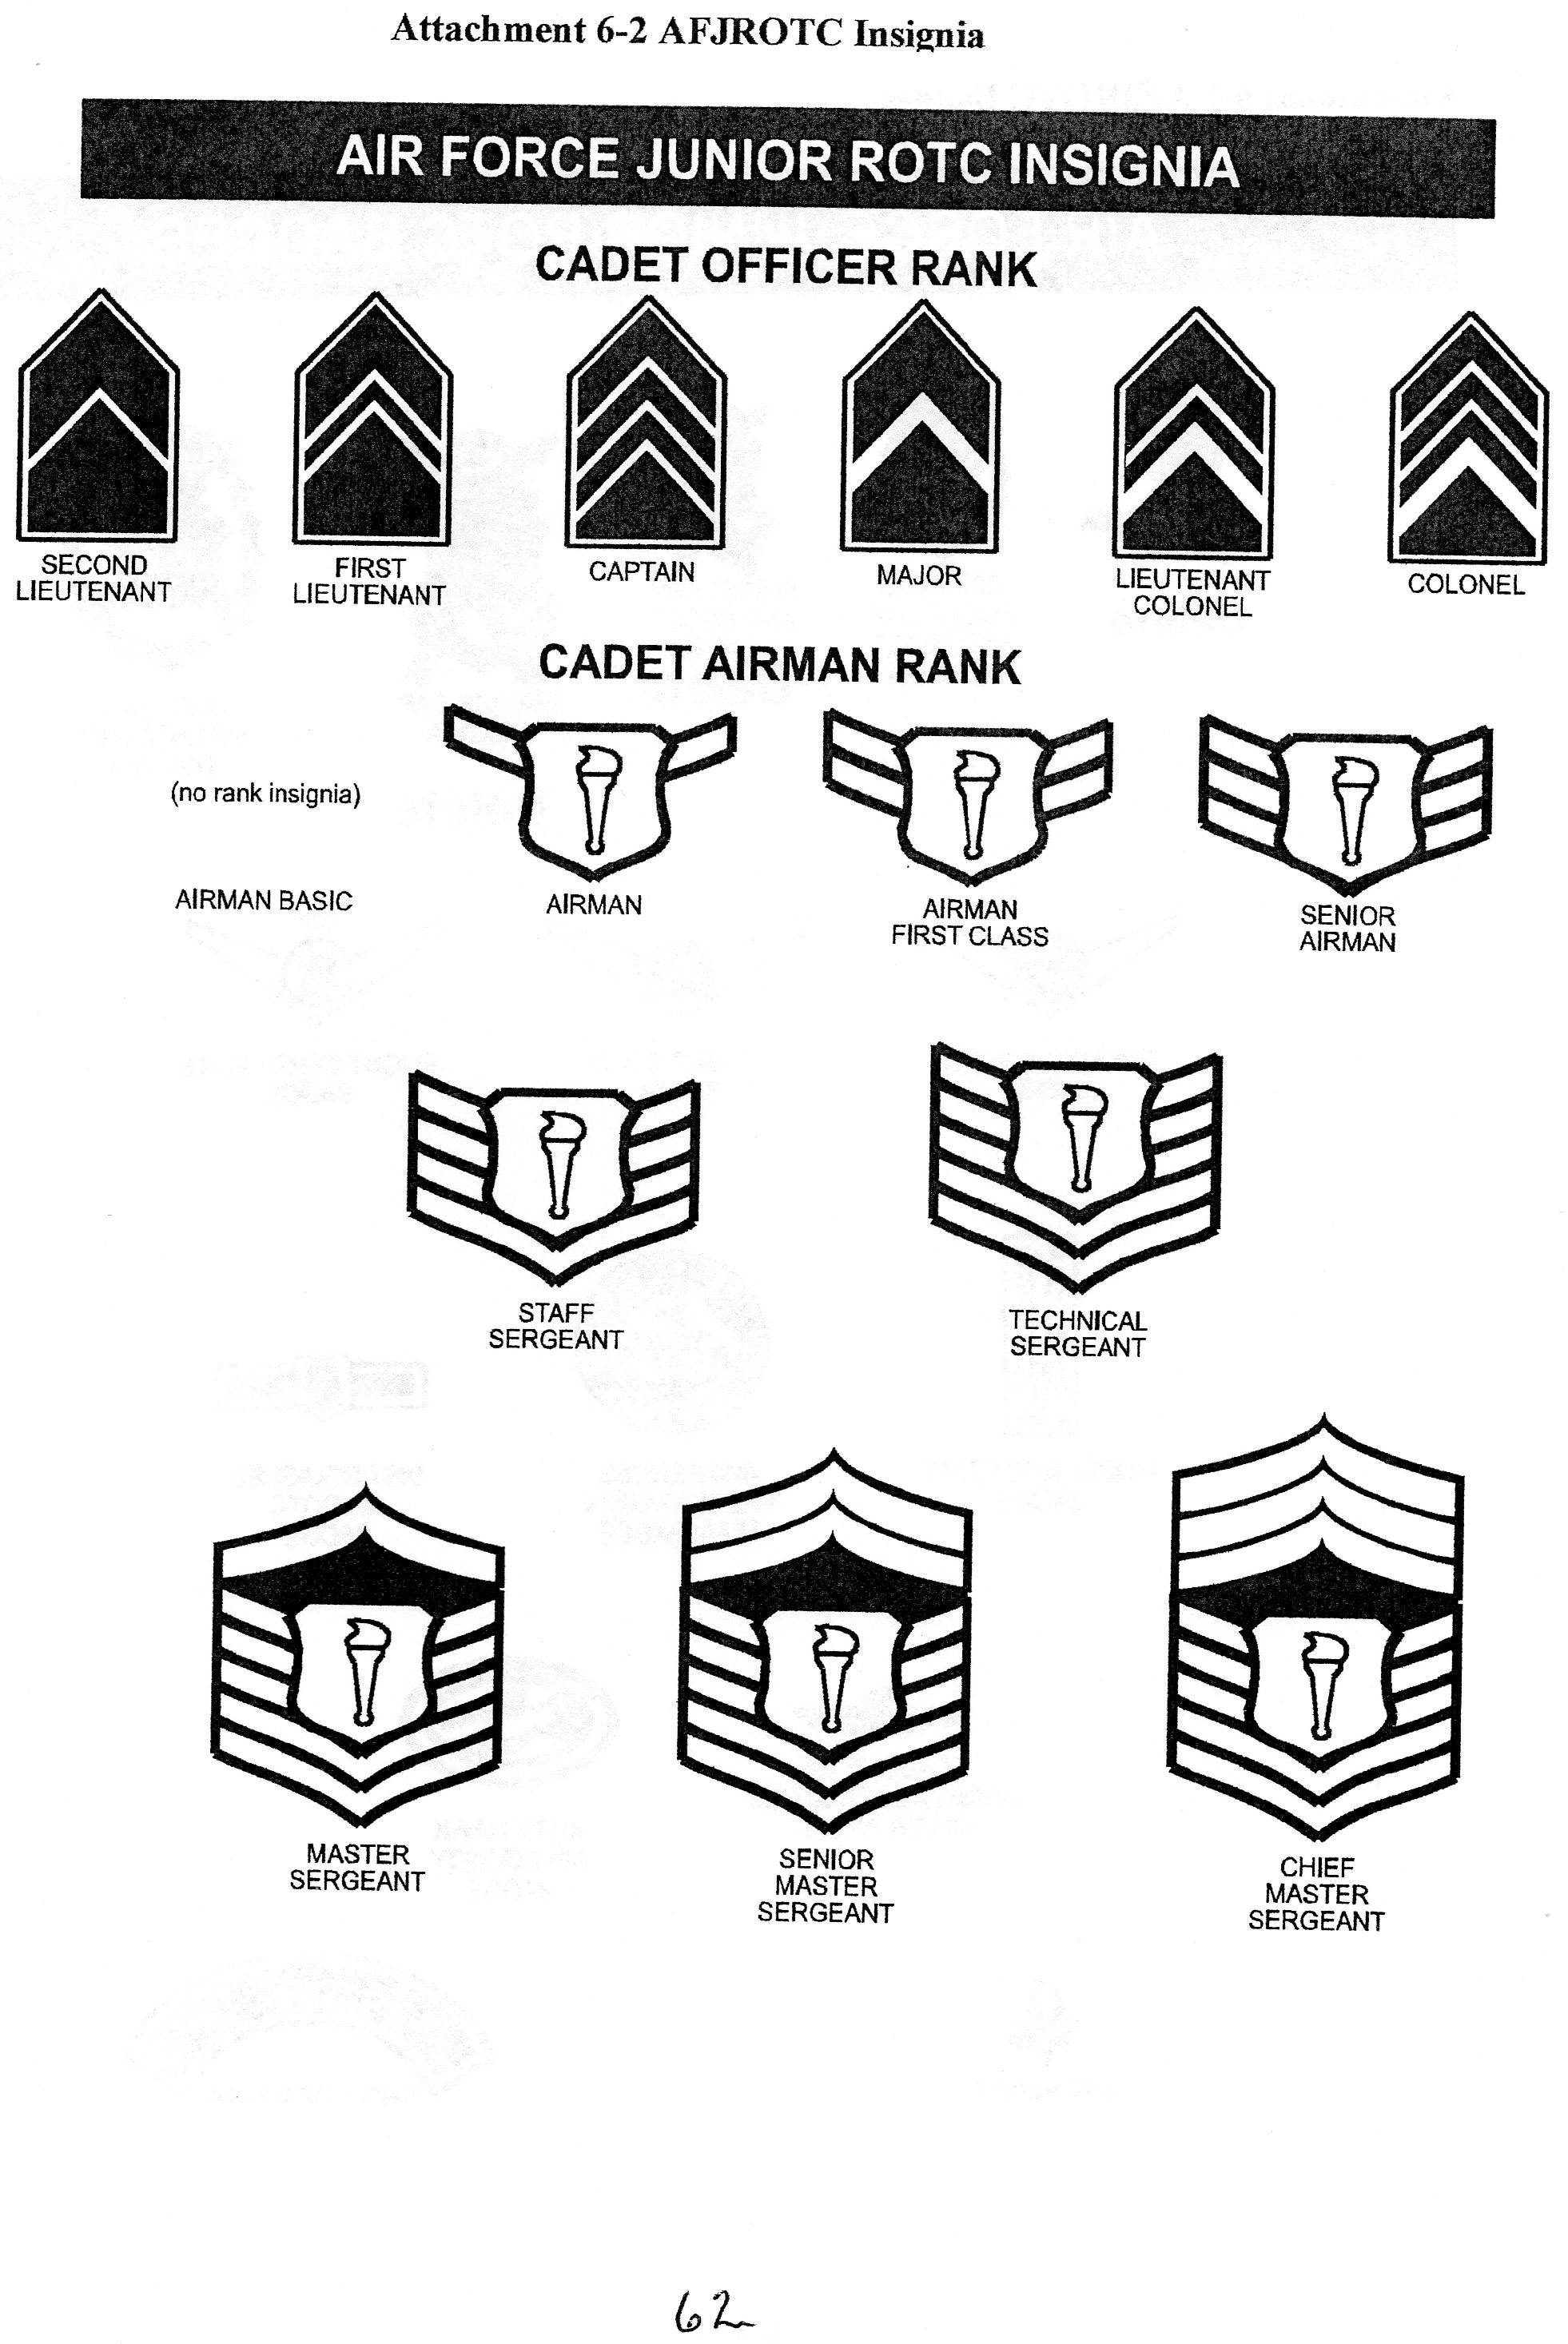 Afjrotc Cadet Guide Licensed For Non Commercial Use Only